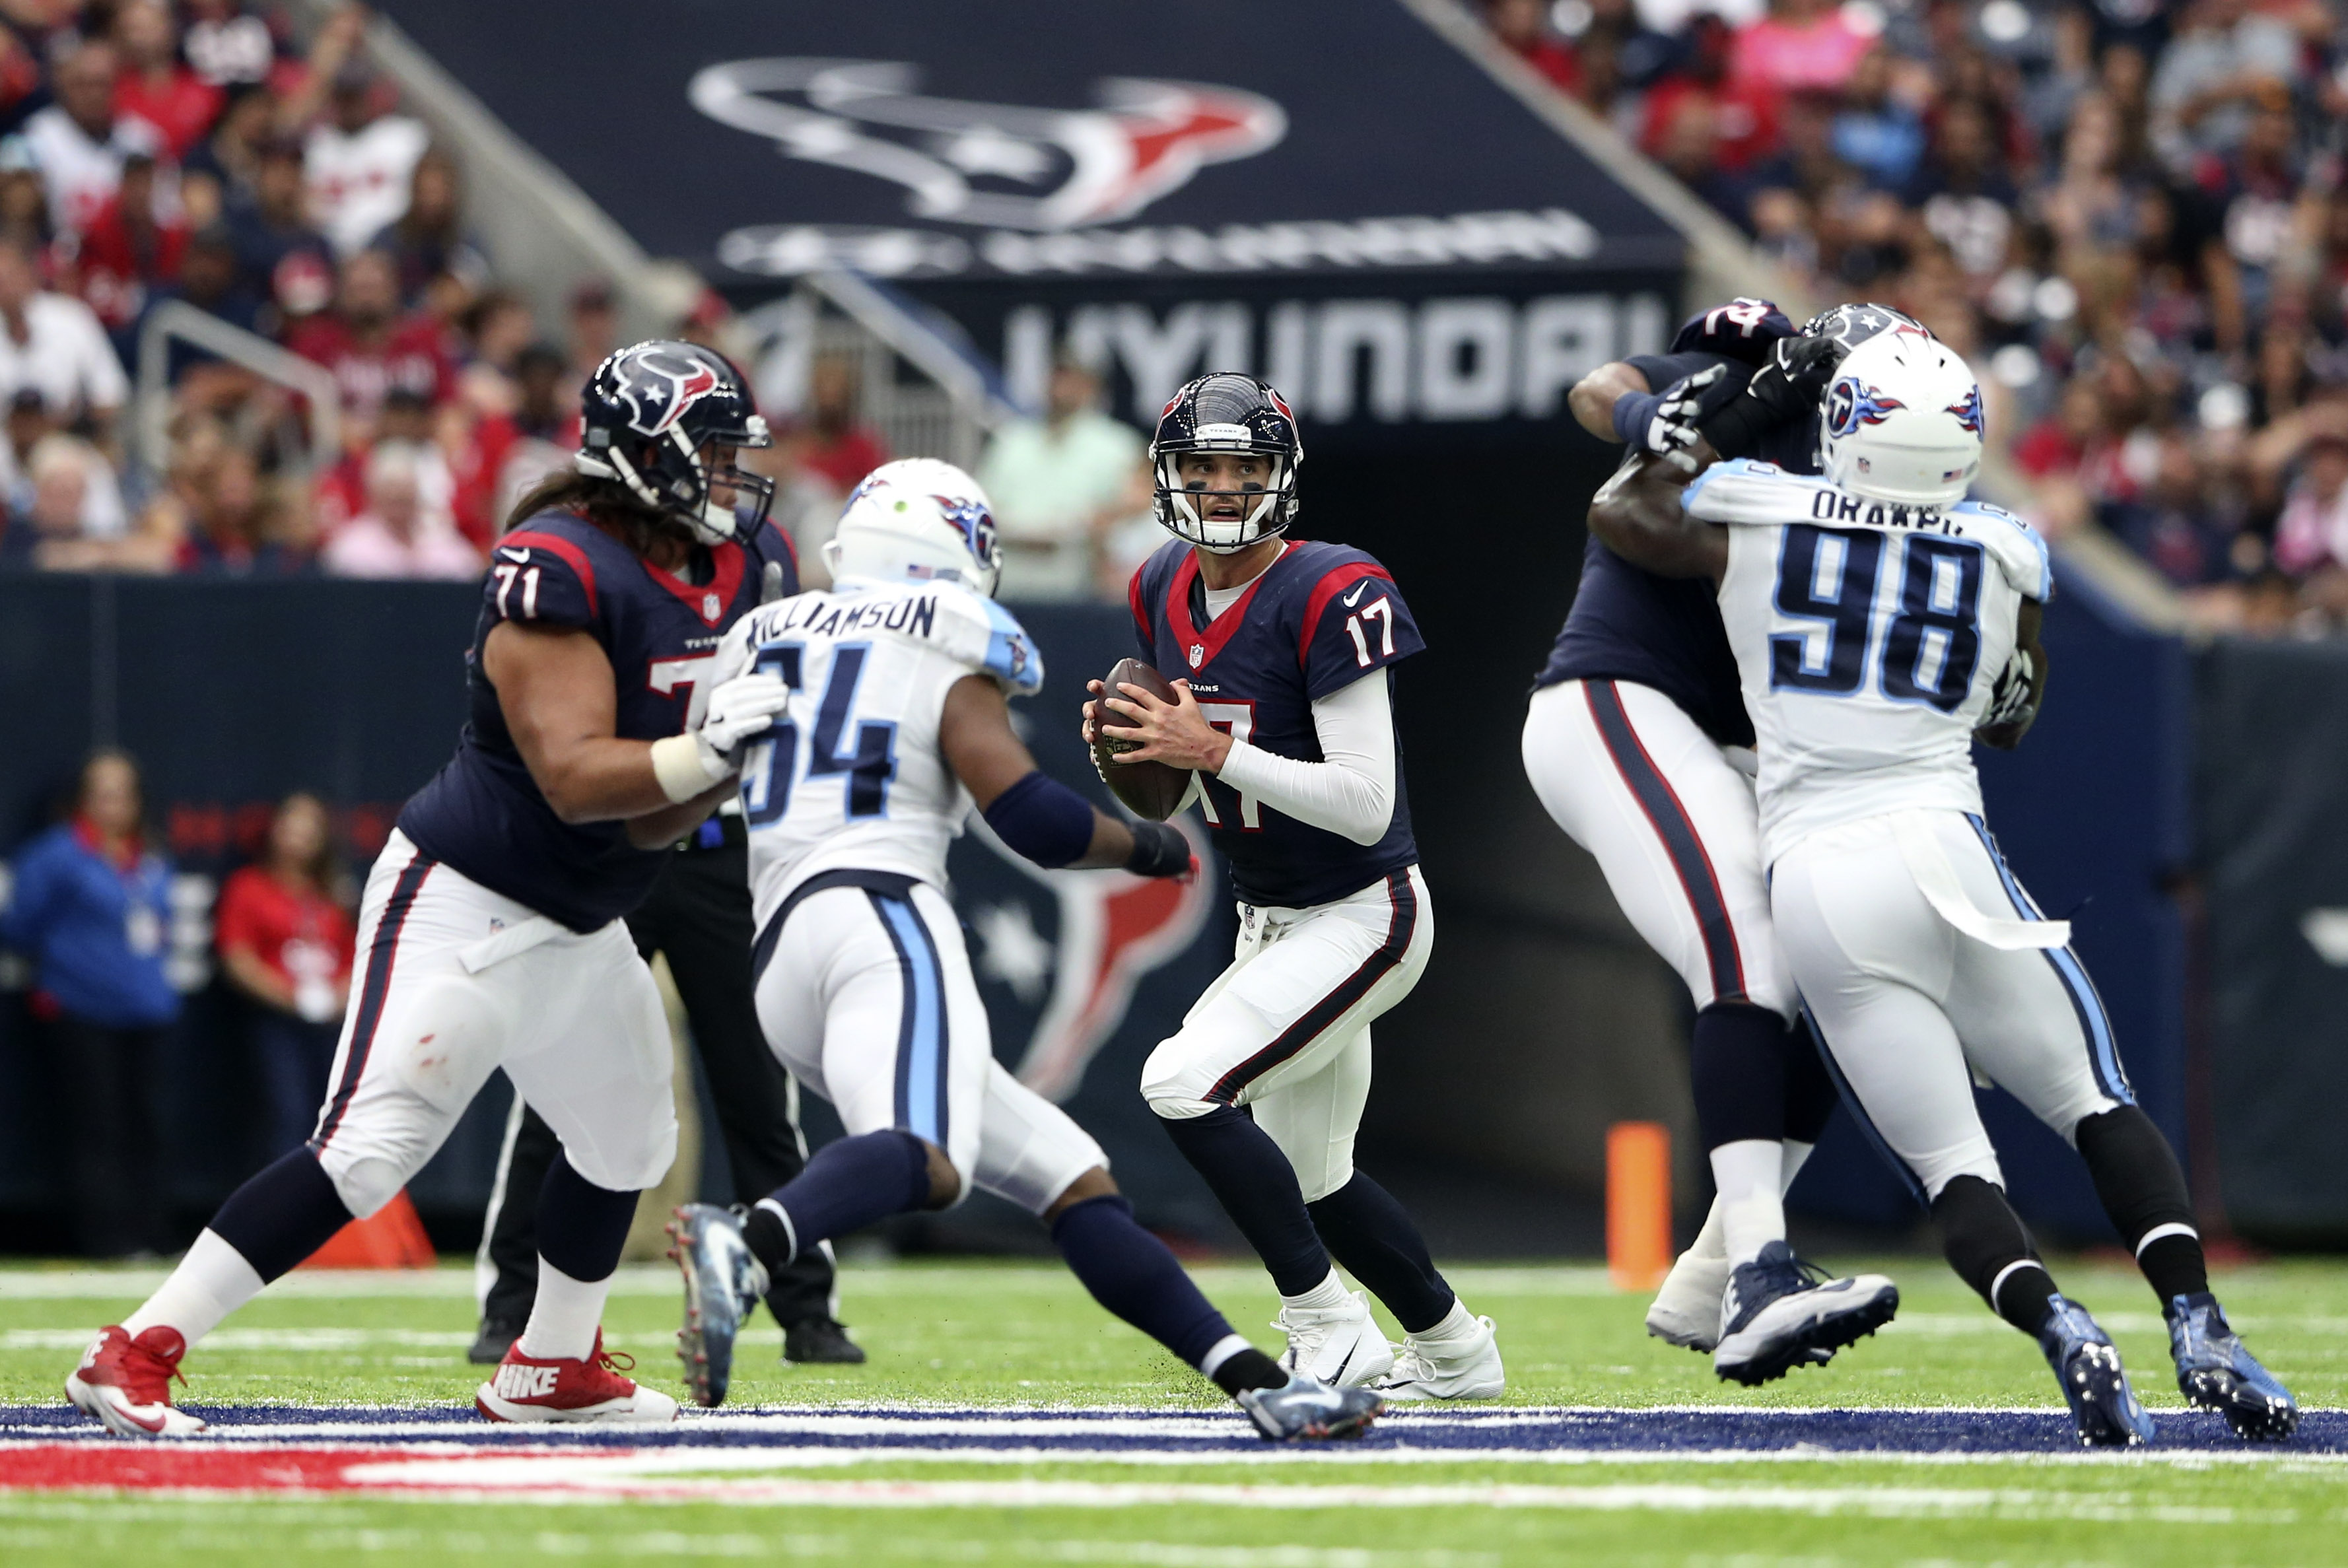 9585939-nfl-tennessee-titans-at-houston-texans